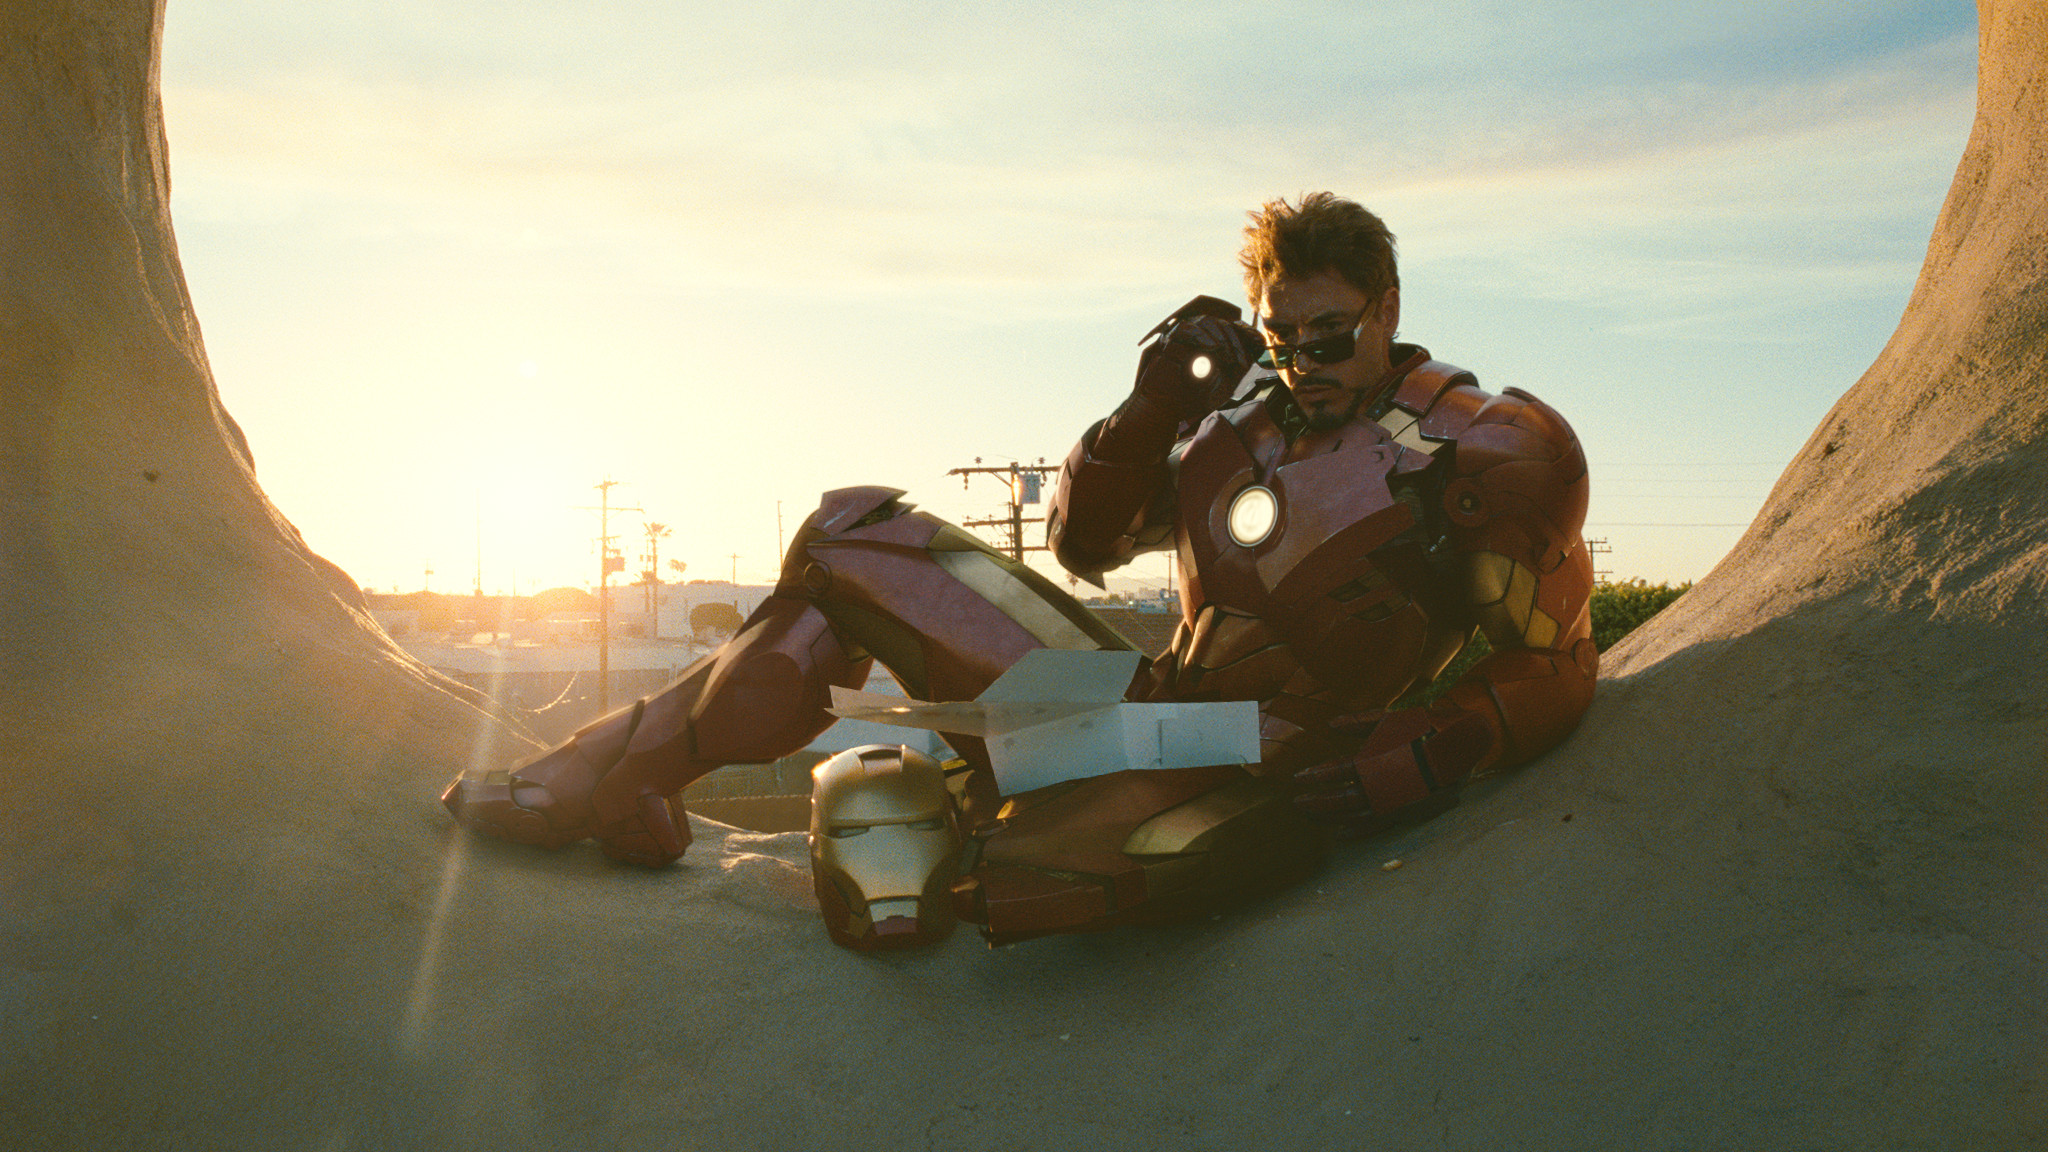 Iron man eats some donuts.jpg